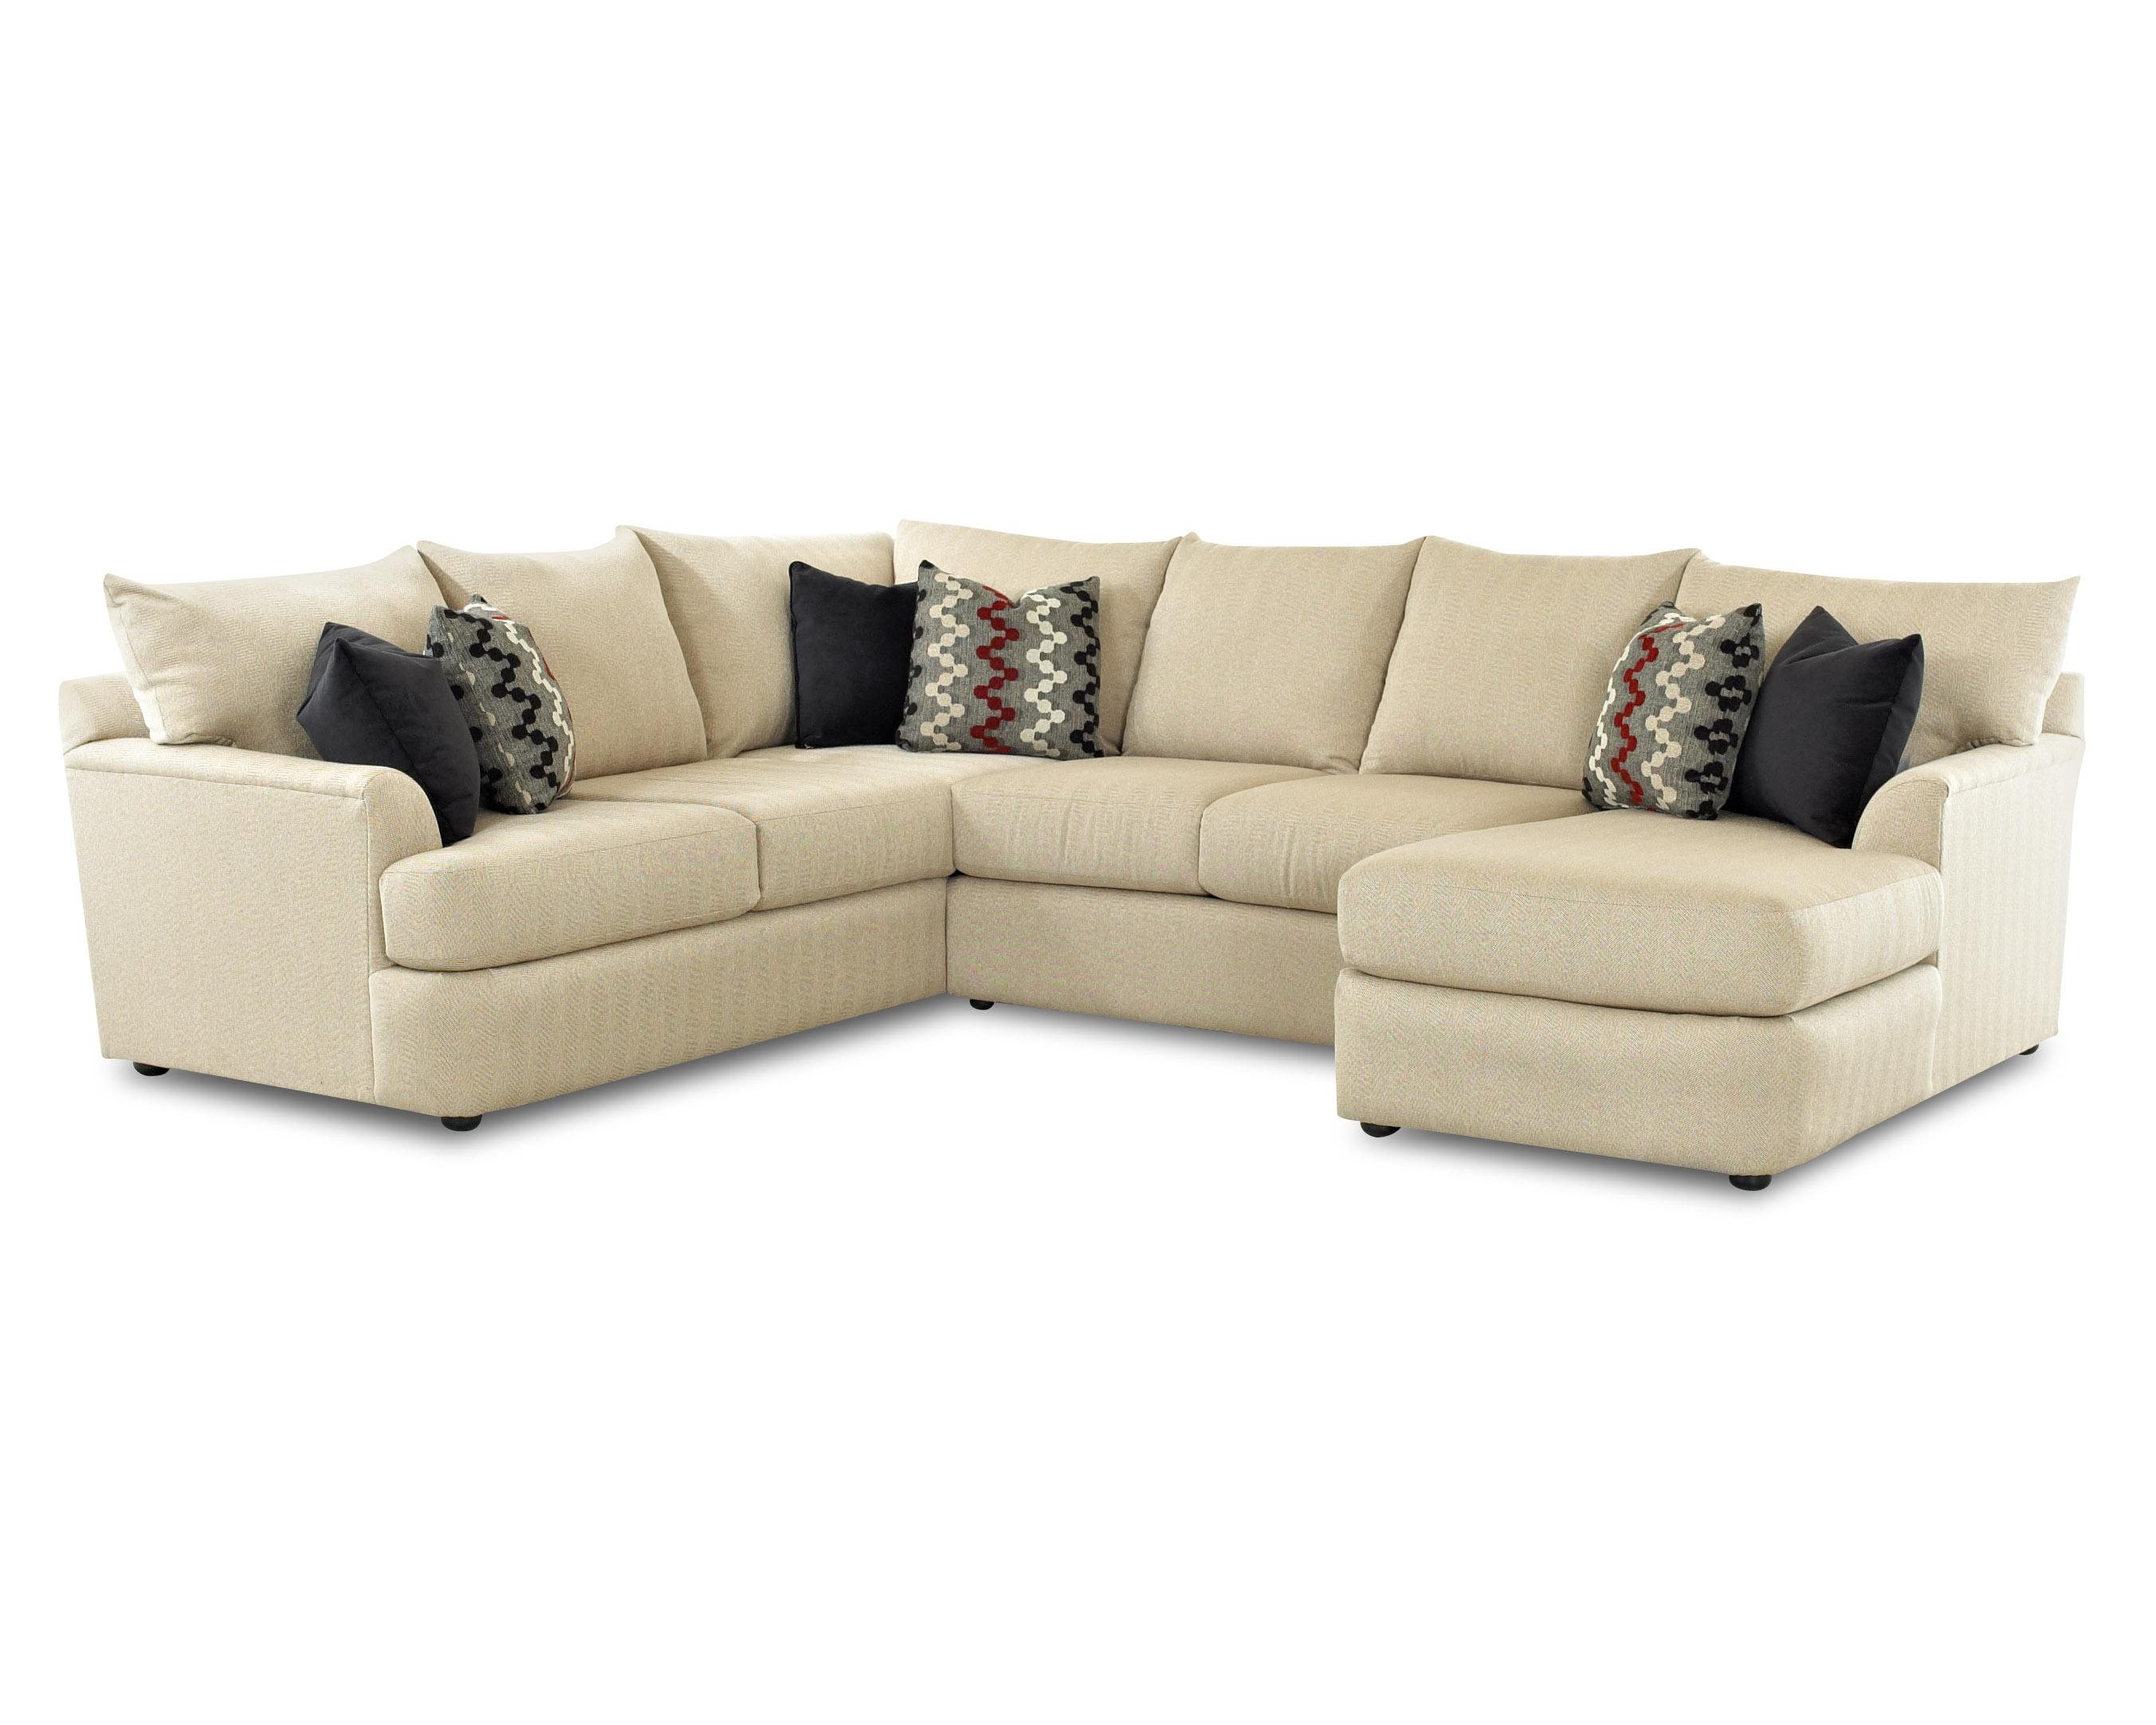 Findley sectional sofa with right arm chaise lounger by for Berkline furniture chaise lounge